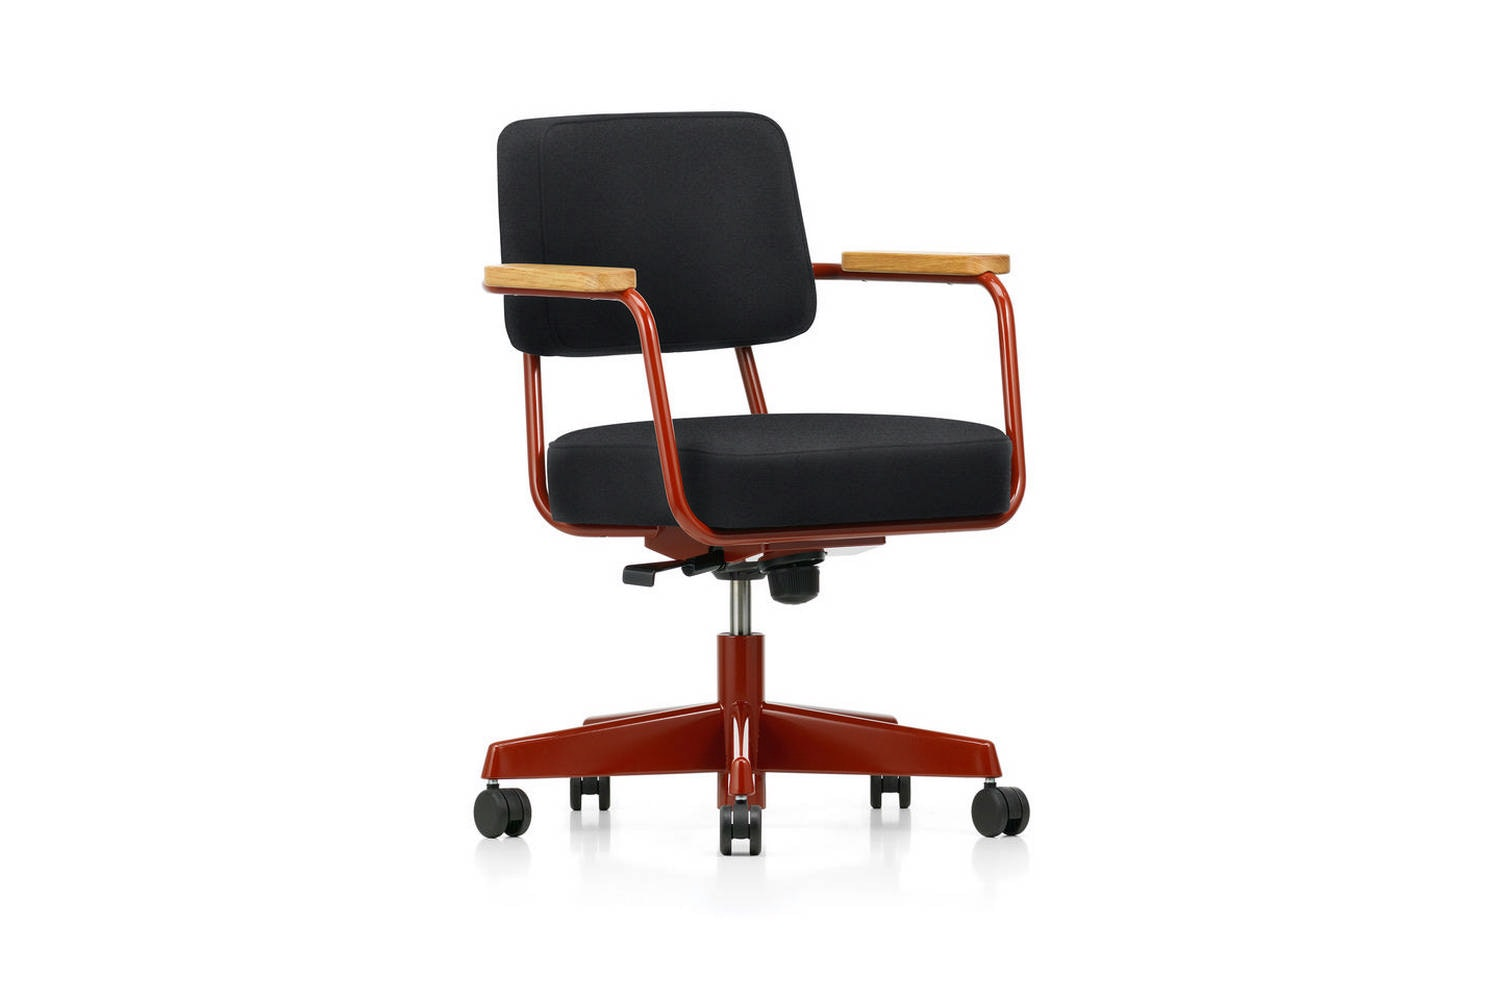 Fauteuil Direction Pivotant Chair by Jean Prouve for Vitra